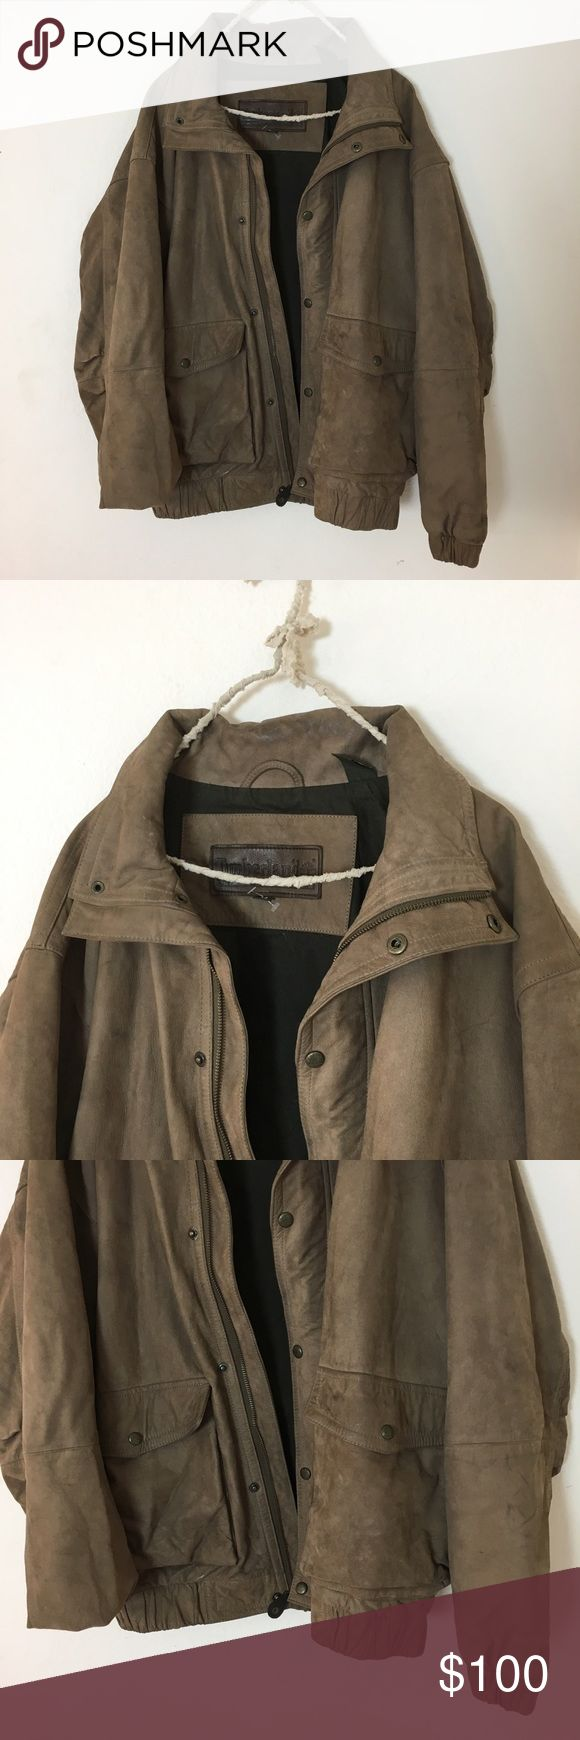 Vintage Timberland Leather Jacket Gorgeous high quality leather jacket. In great condition, has scuffs and wear from age and normal wear and tear. Men's size medium great for girls medium. Cute oversized casual look. Any questions, feel free to ask! Brandy Melville Jackets & Coats Utility Jackets